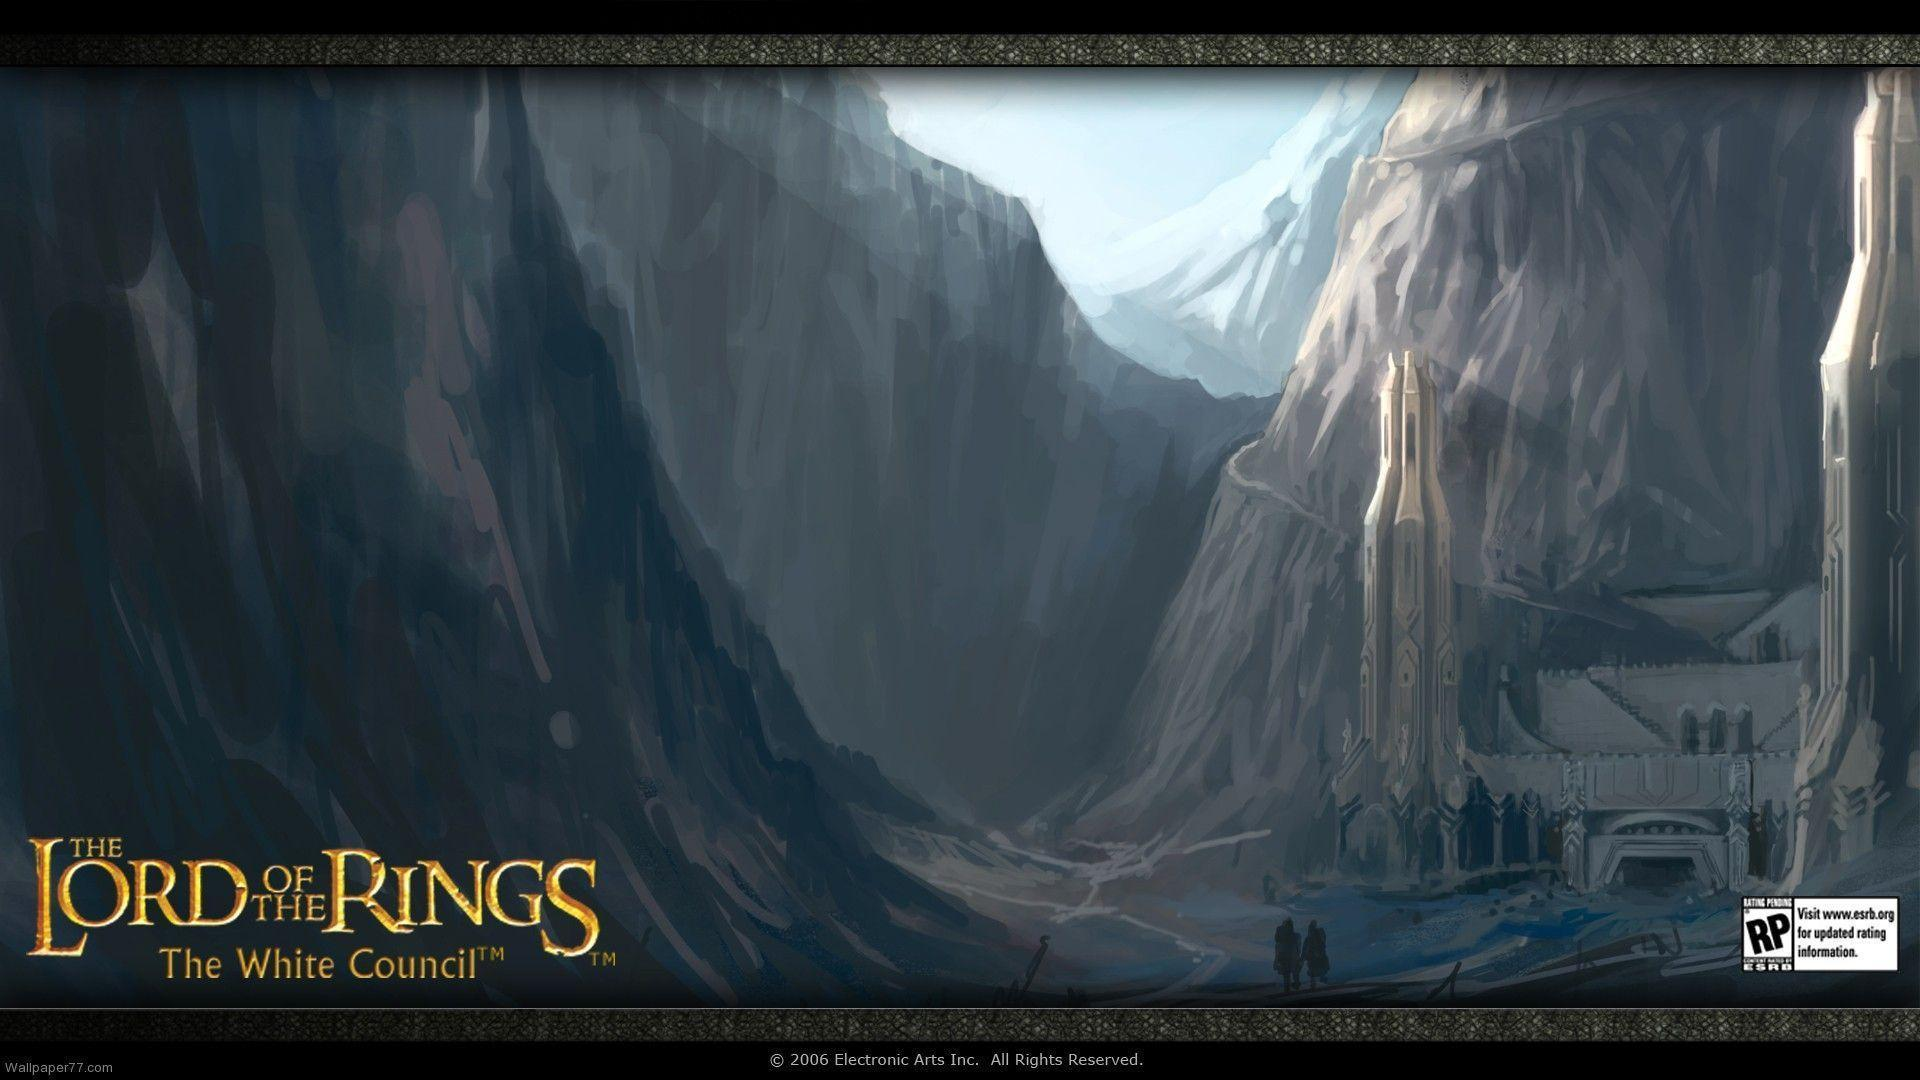 Lord Of The Rings wallpapers 237171